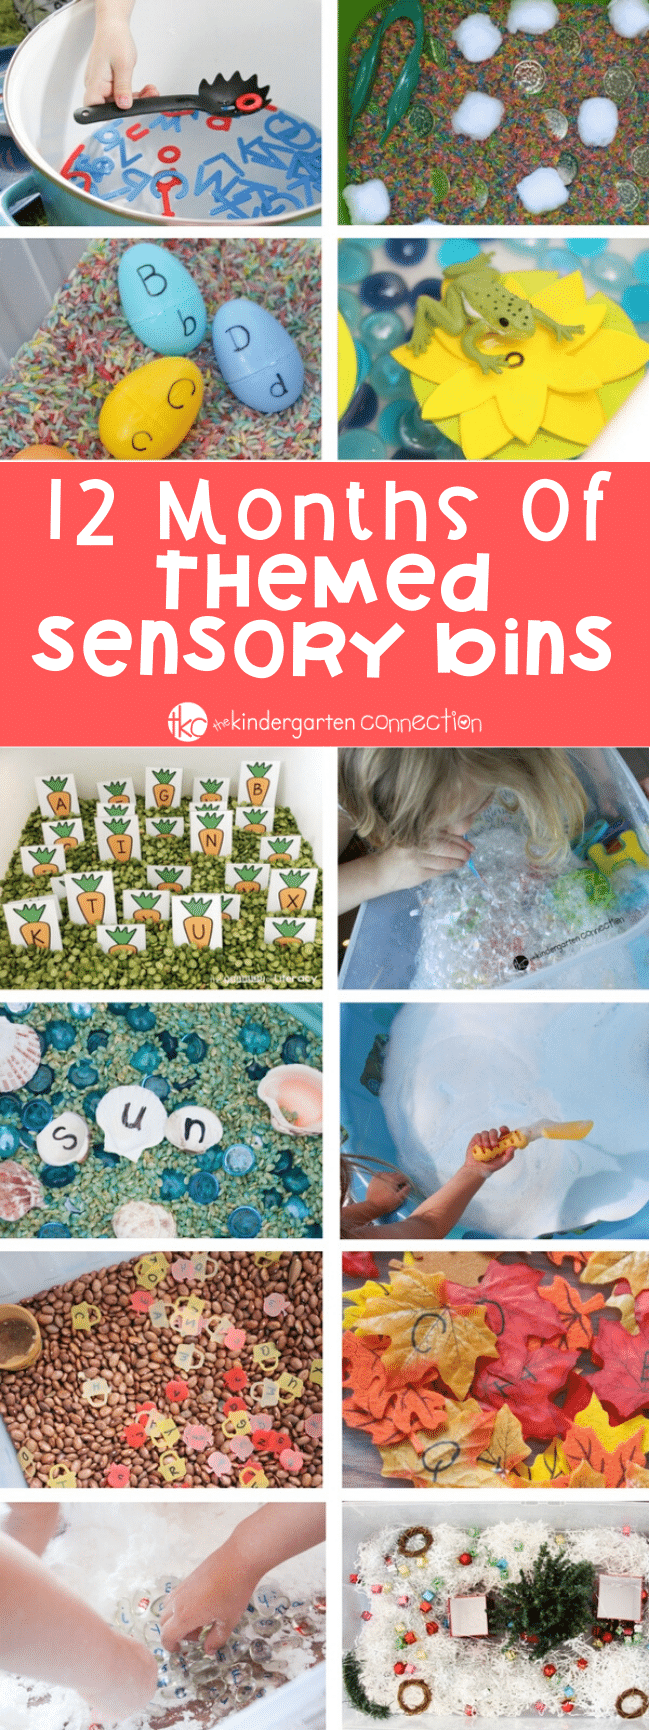 12 Months Of Sensory Bins. Ideas for all 12 months, to have themed sensory bins in your classroom, homeschool or simple activities for kids at home. #sensorybin #holidaythemeactivities #preschoolclassroom #homeschool